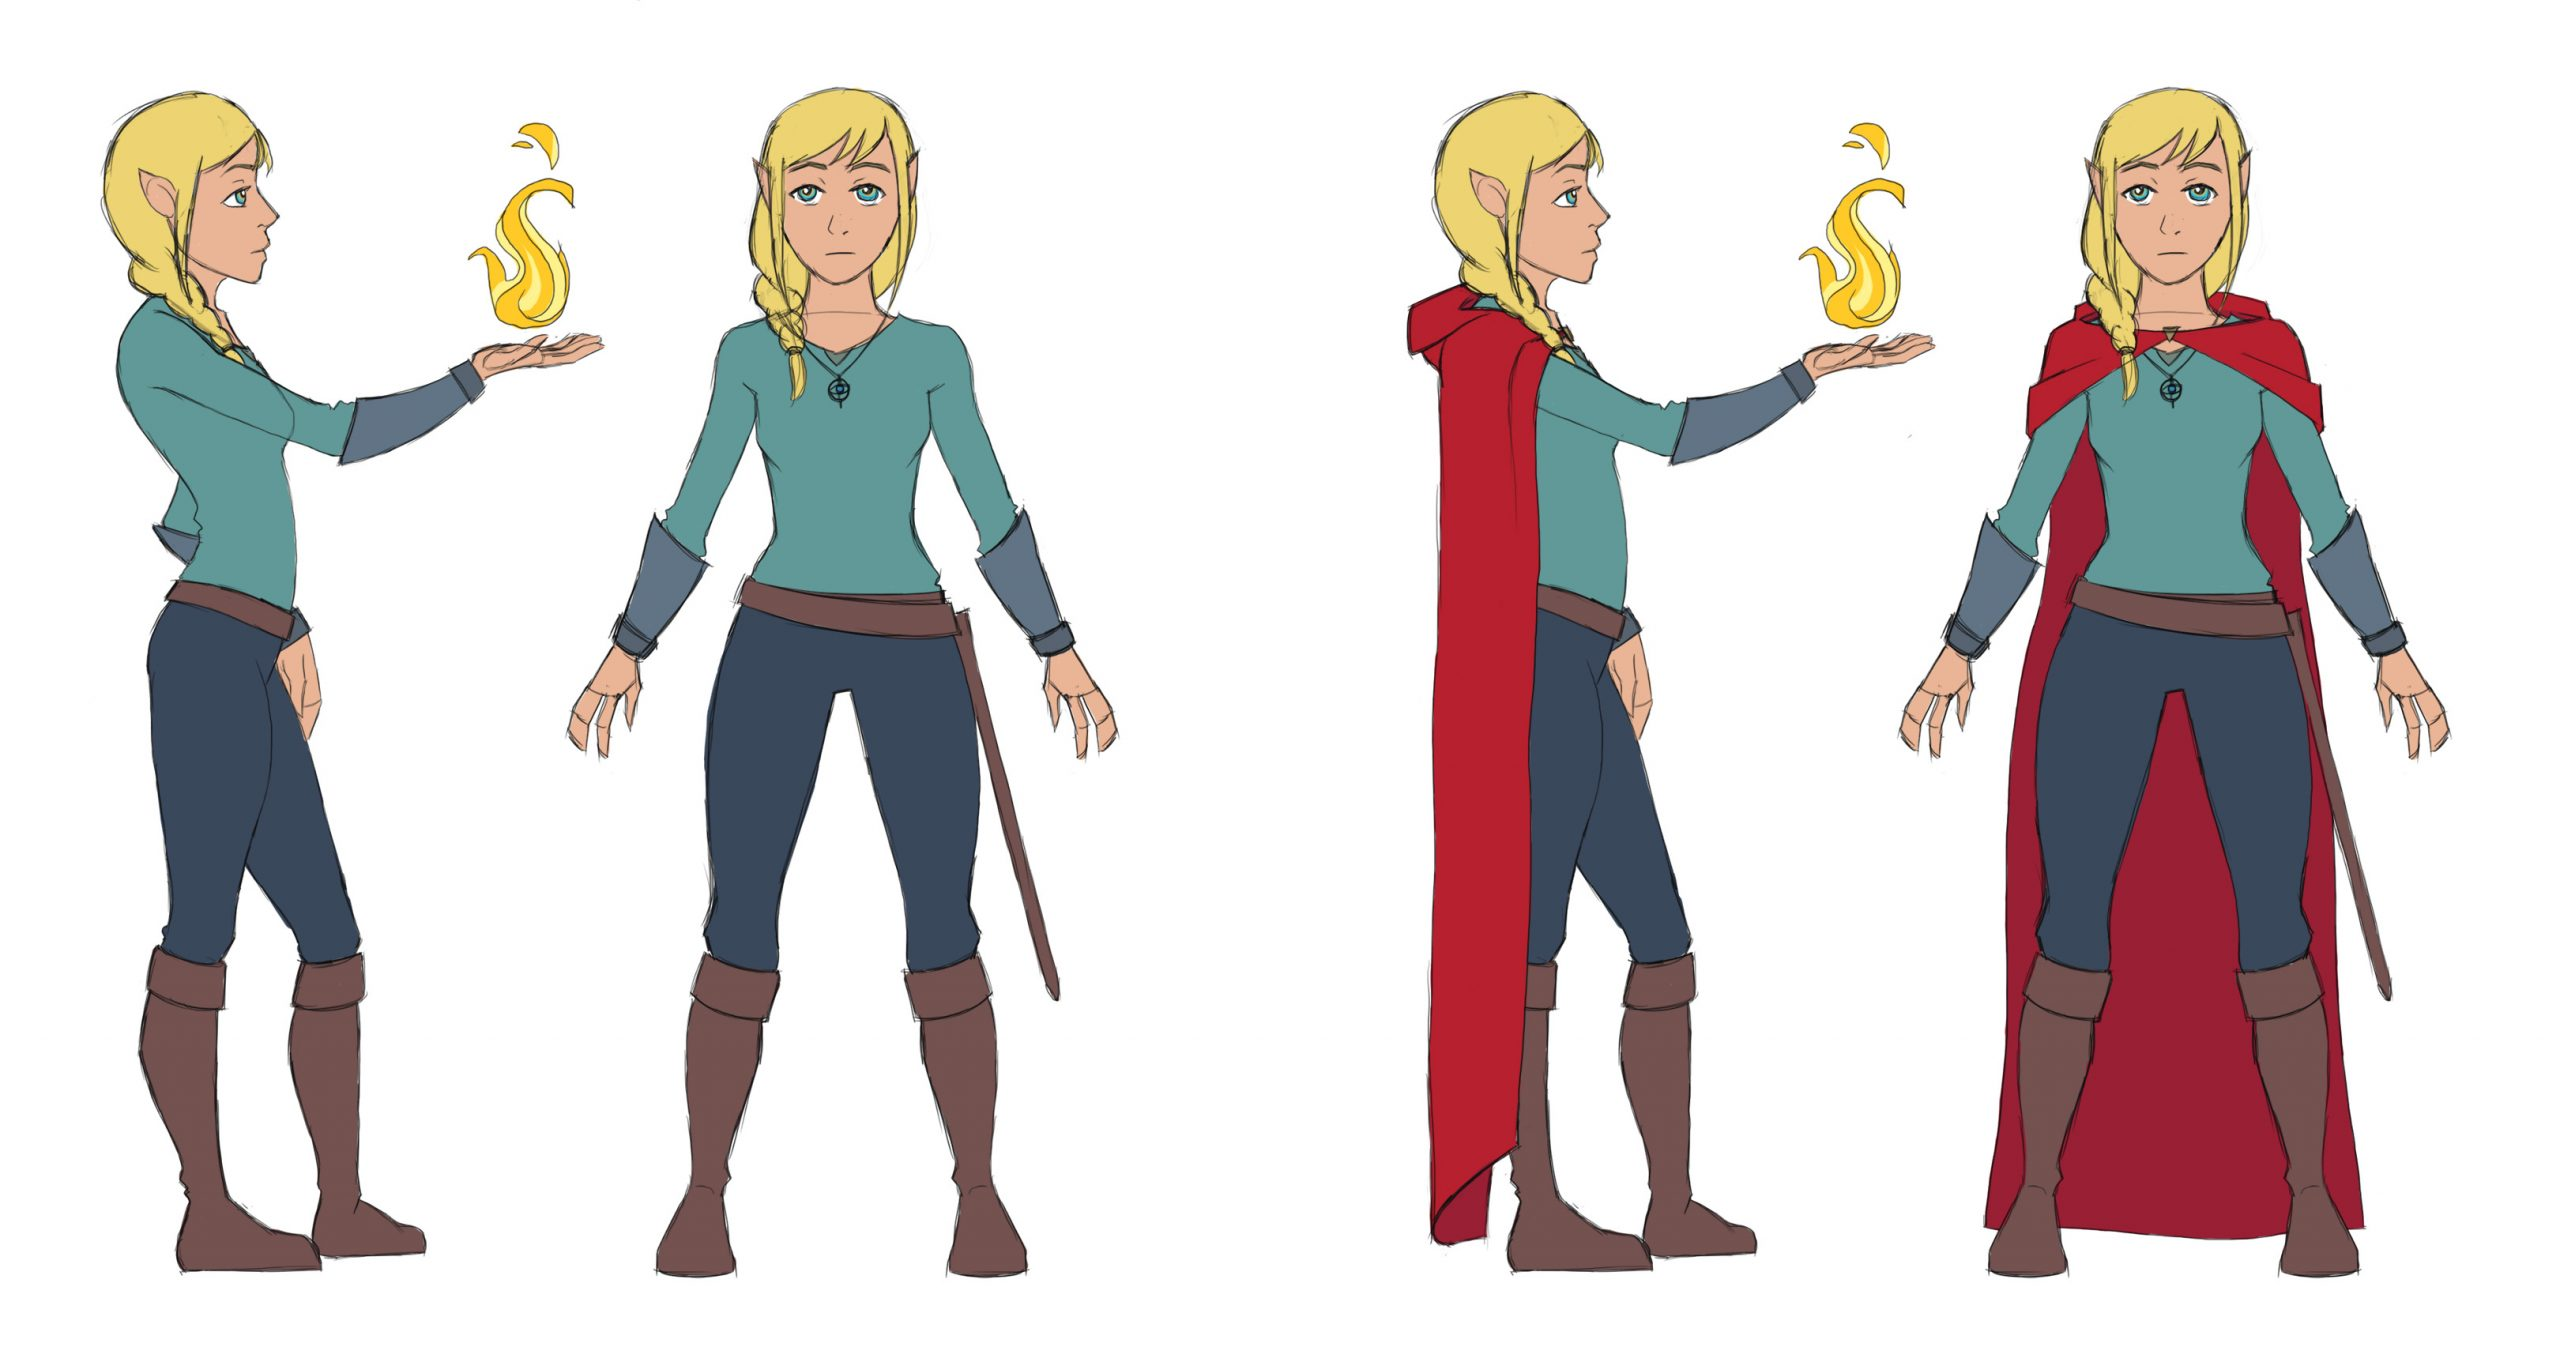 Average girl with gold-blonde hair and golden eyes. Her ears are slightly pointed. Donning a deep red cloak that acts as a cape, cool-themed shirt, gauntlets, and pants, as well as a sword belt and boots. Her hair is braided and to the side. She wields fire in her right hand.